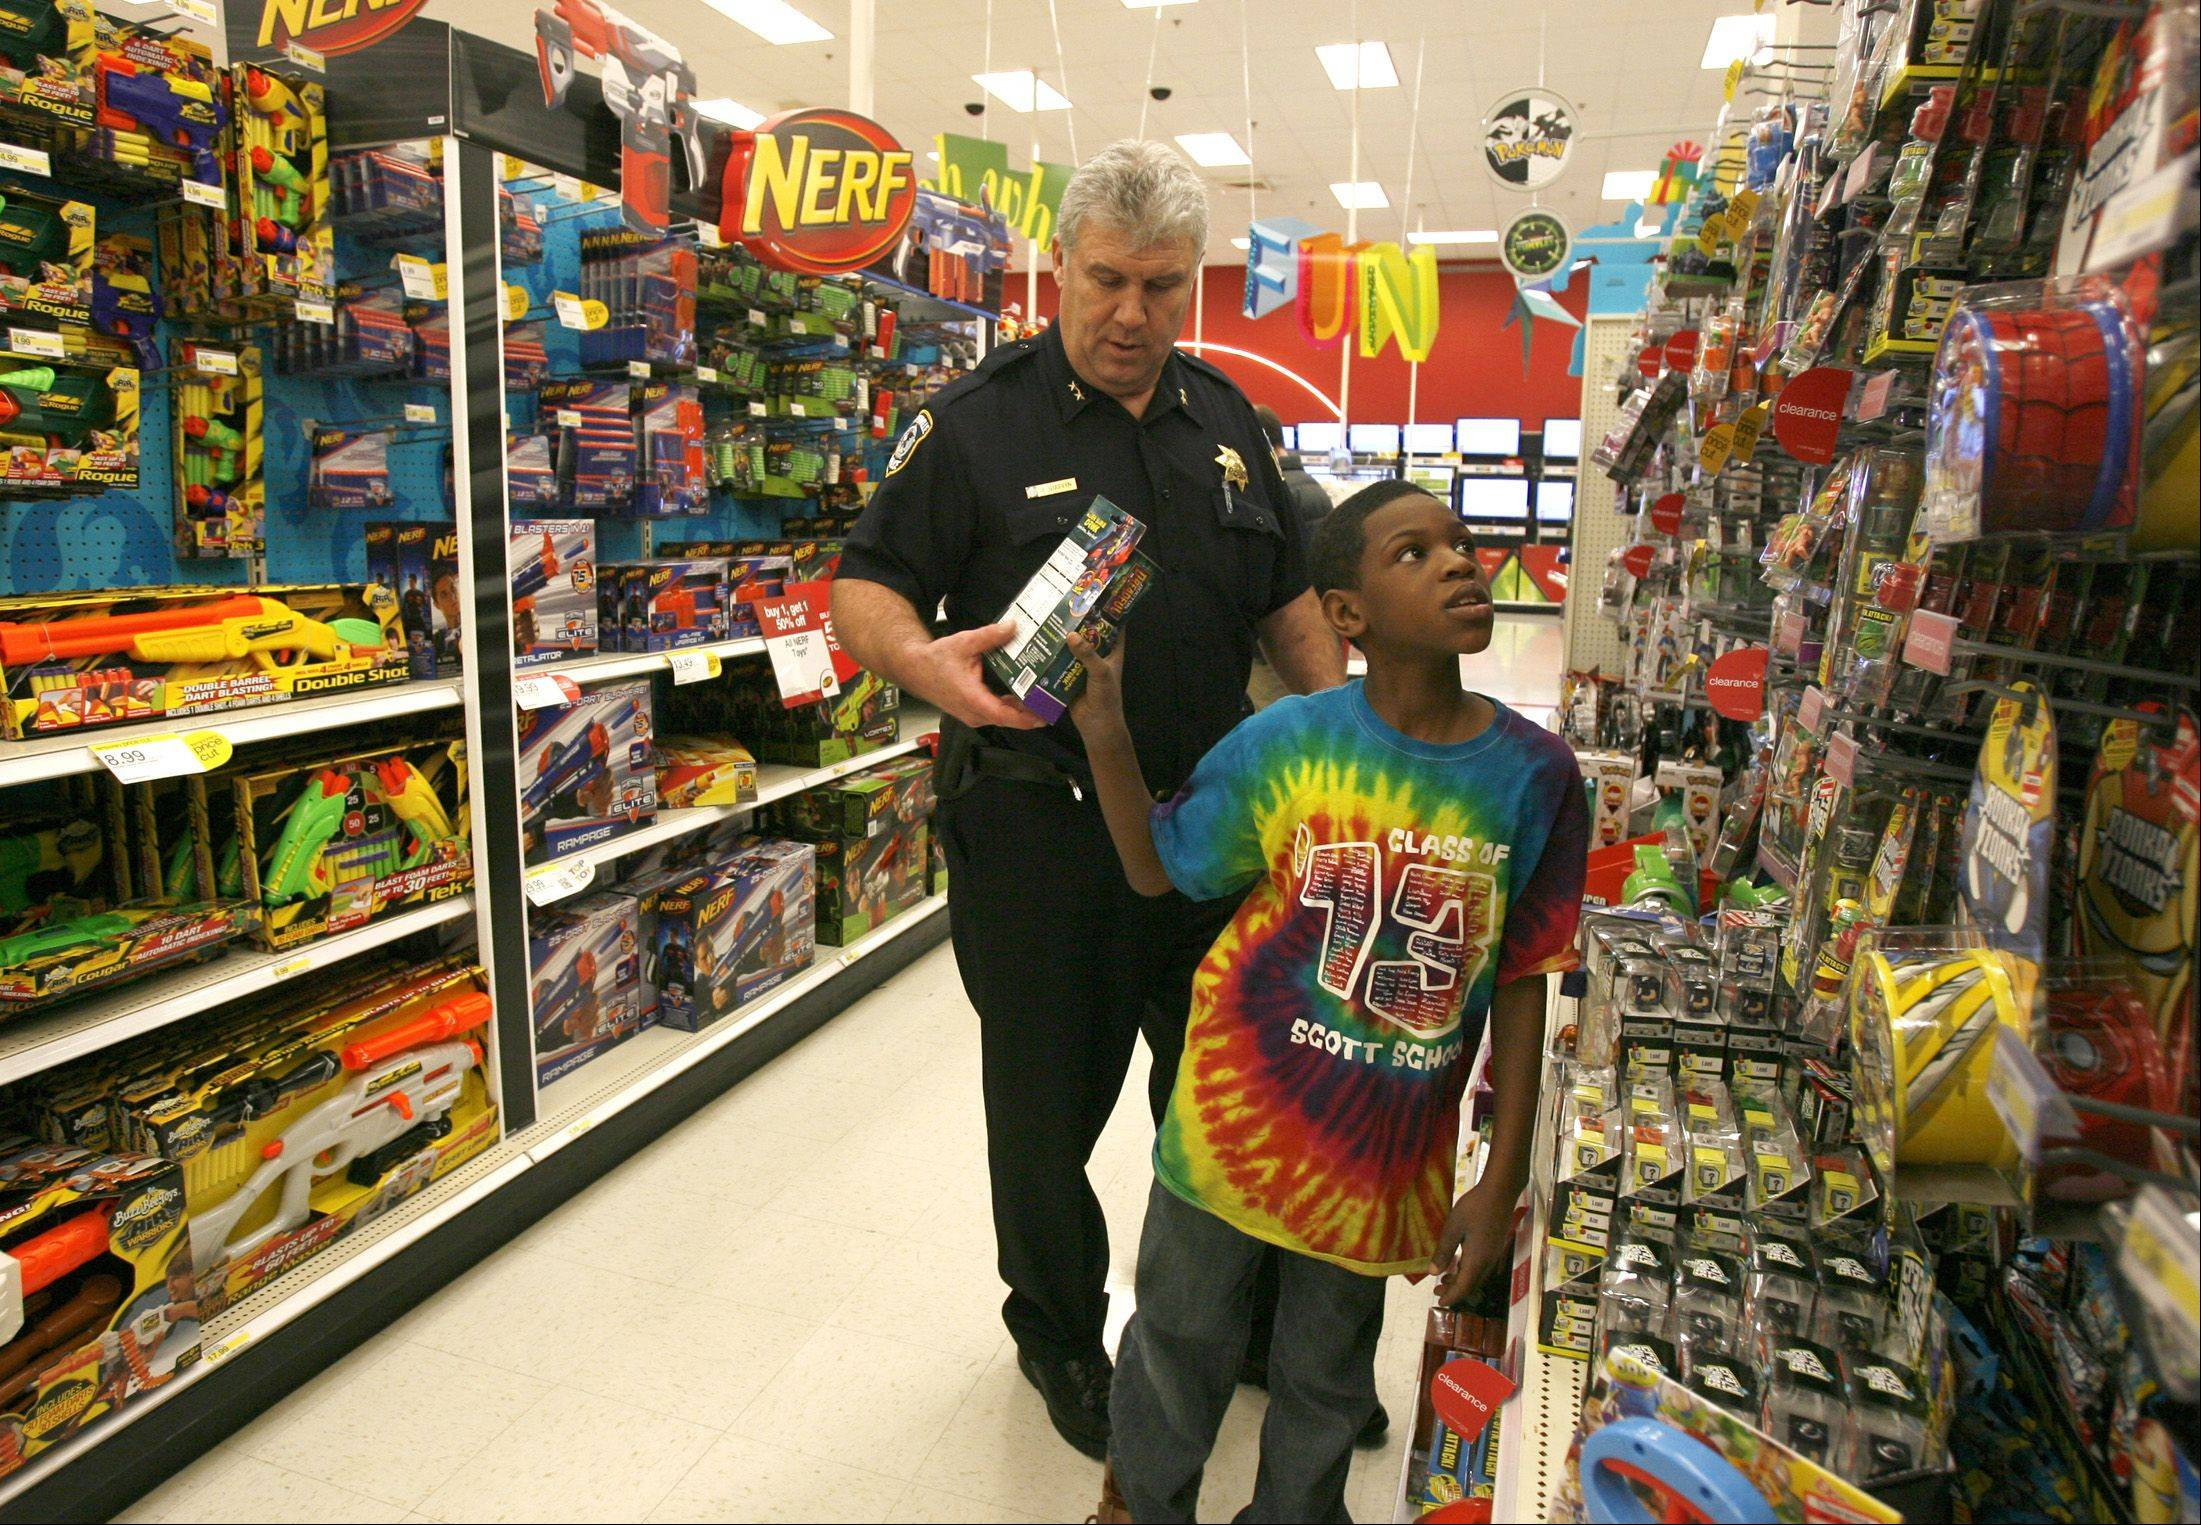 Darrell Ware, 10, of Naperville is teams up with Naperville Deputy Chief John Gustin, who guides a shopping spree at a Naperville Target Store. The NFOP in conjunction with the City of Naperville�s youth services unit, selected several children to participate in a $150.00 shopping spree.